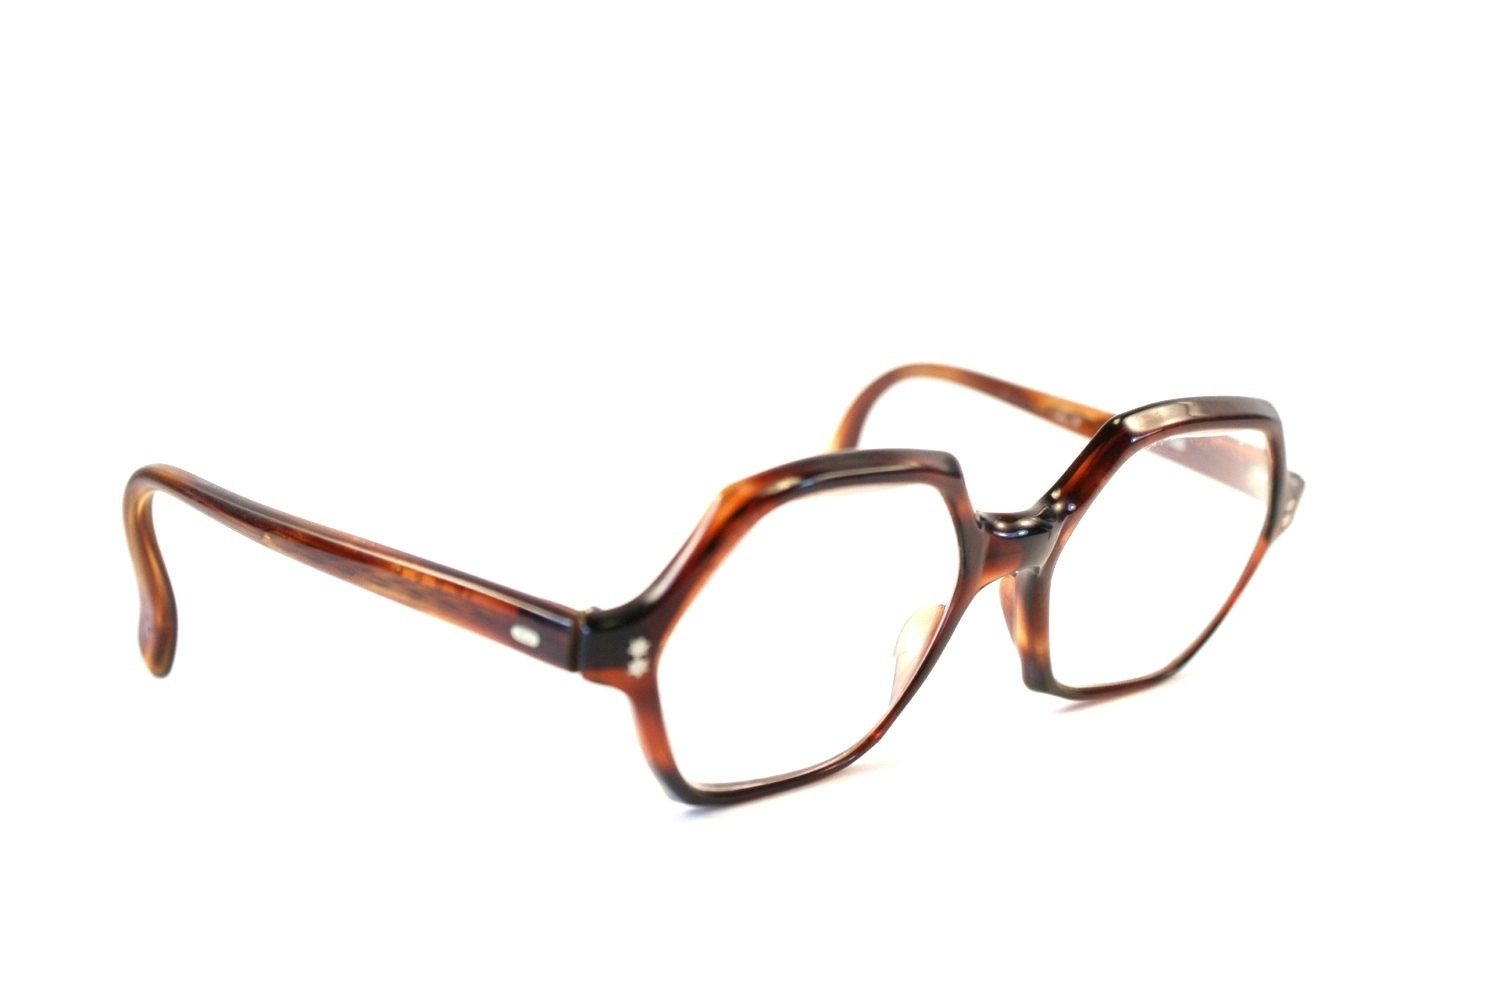 Plastic Glasses Frame Bent : Vintage Geeky Glasses Plastic Tortoise Shell by ...